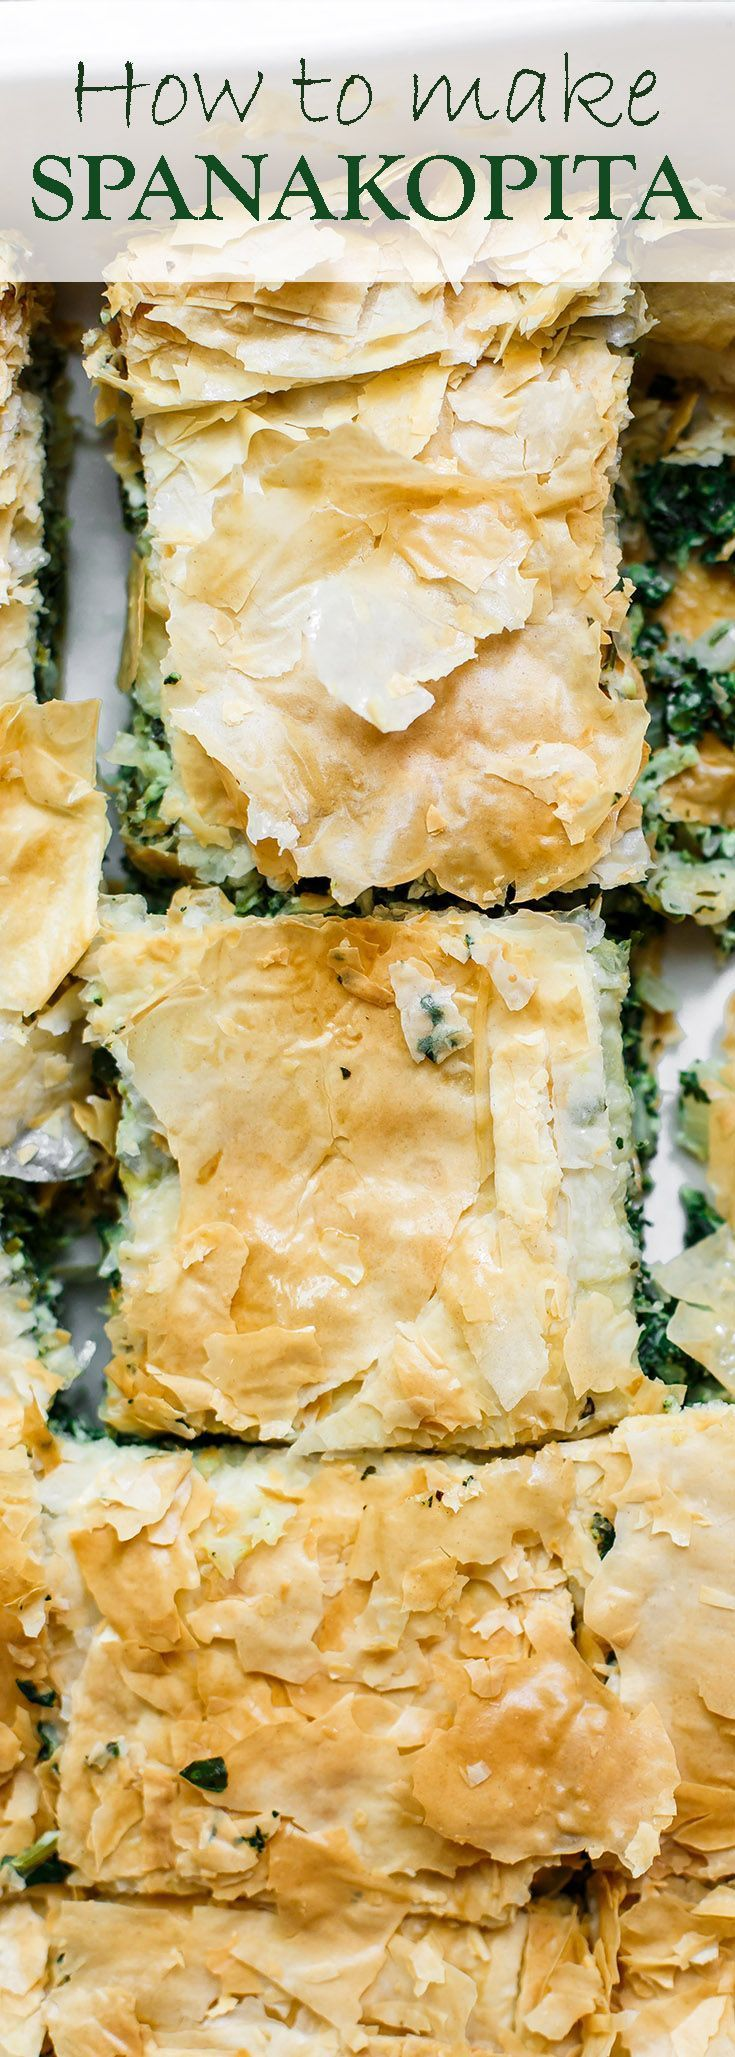 Spanakopita Recipe (Greek Spinach Pie)   The Mediterranean Dish. The best tutorial for how to make spanakopita. Greek spinach pie with crispy, golden phyllo and a soft filling of spinach, feta cheese, and herbs. A holiday recipe for make it for dinner! So easy. See it at http://TheMediterraneanDish.com